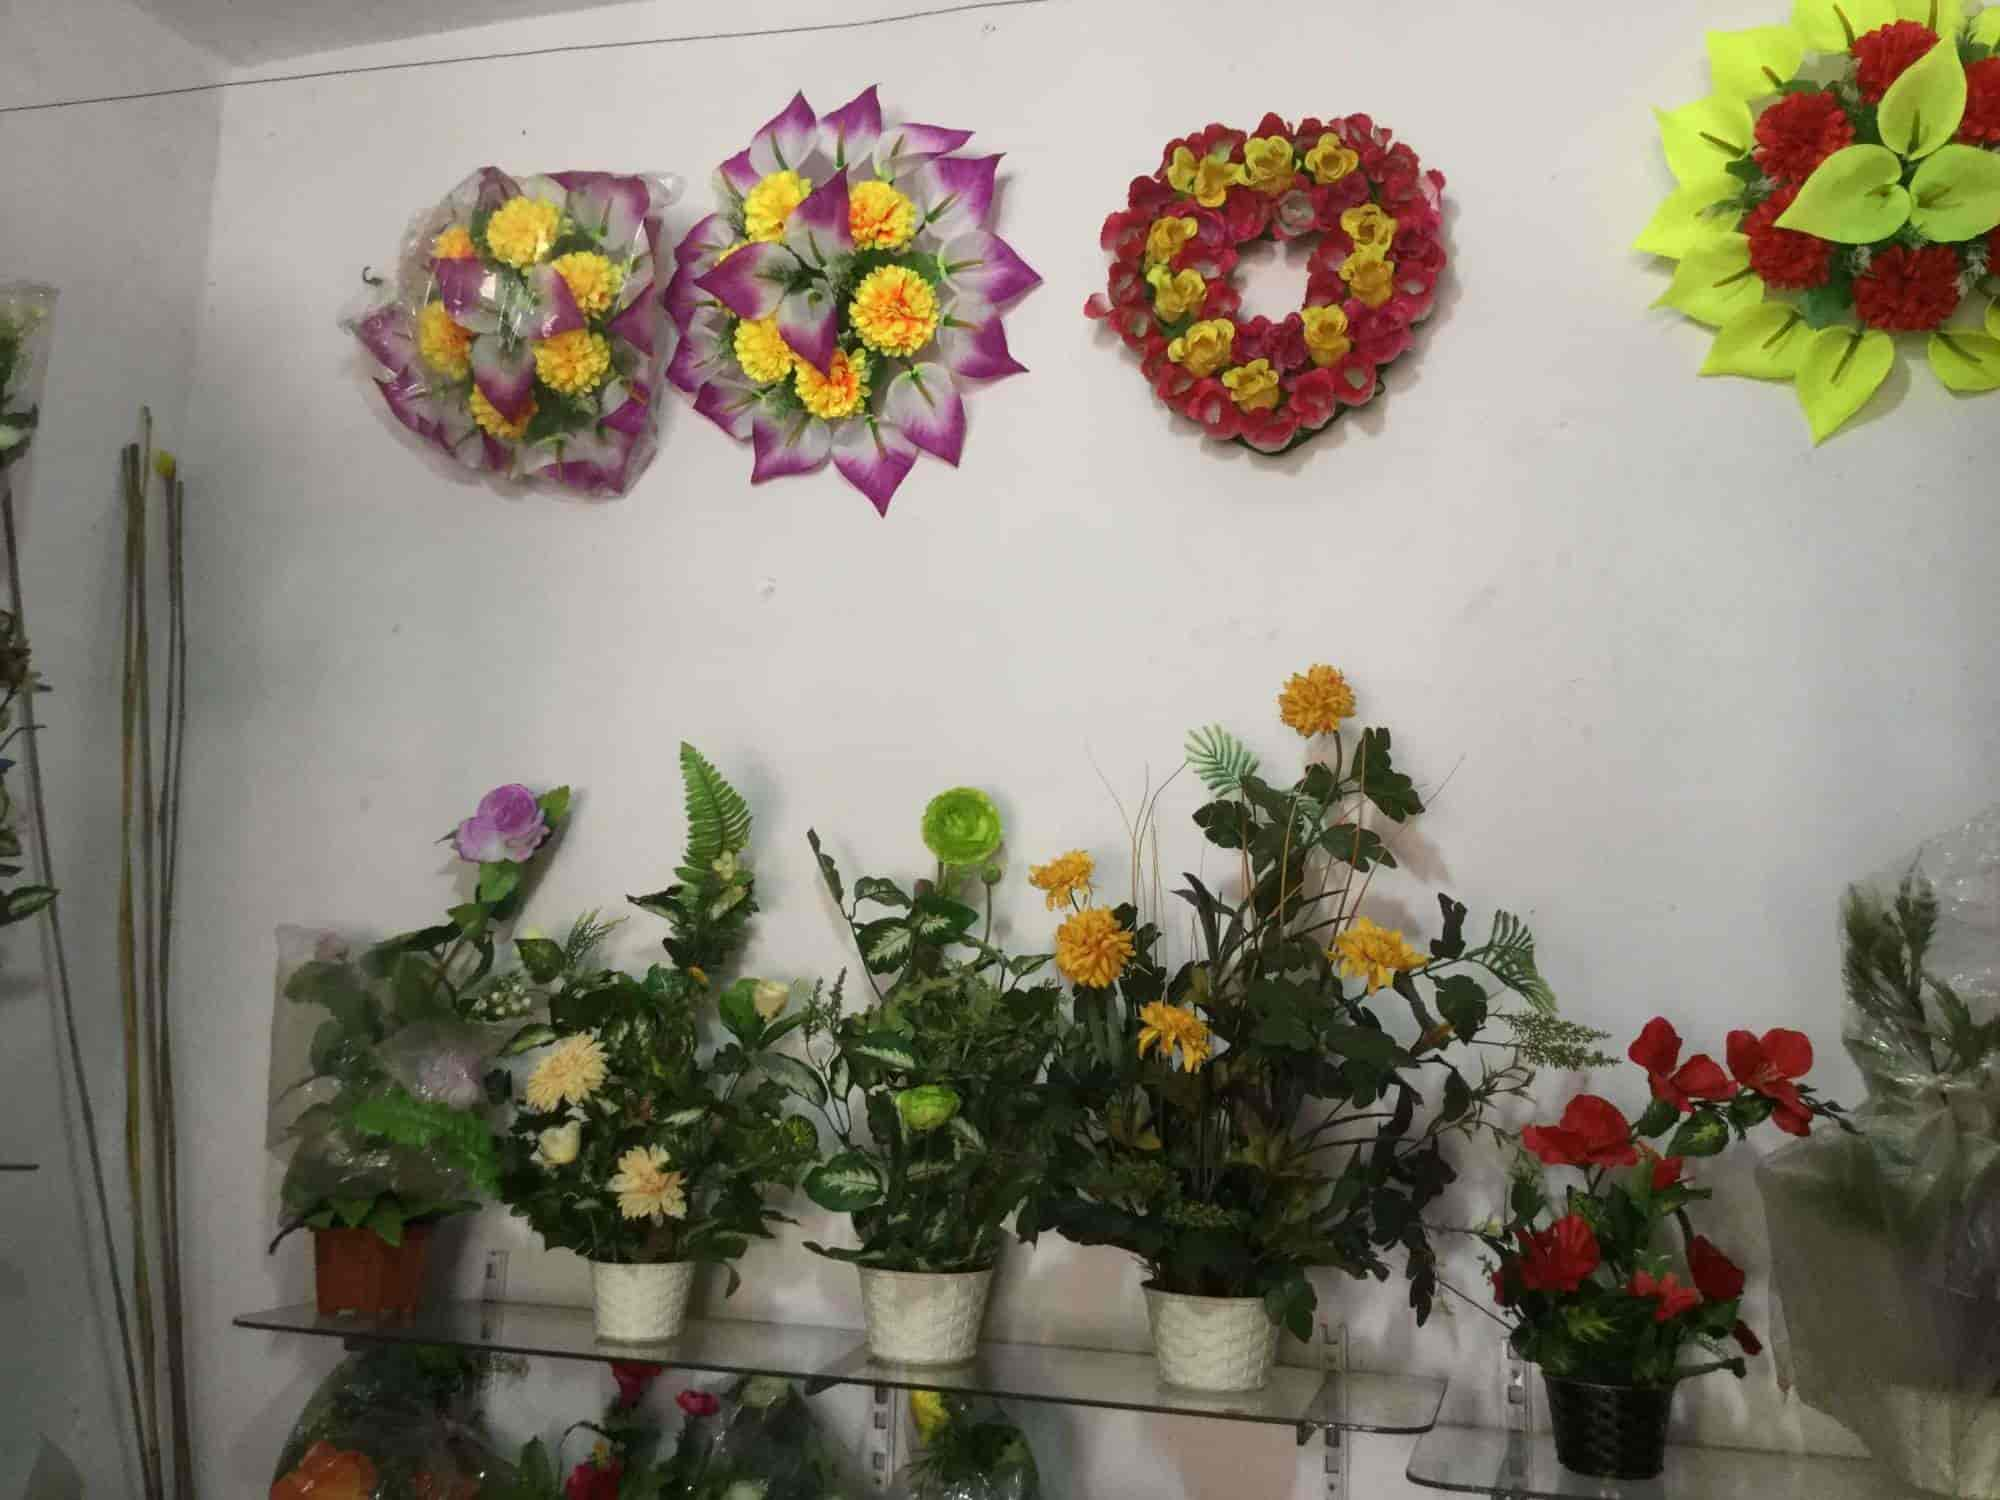 plants n flowers photos, kadolkar galli corner, belgaum- pictures